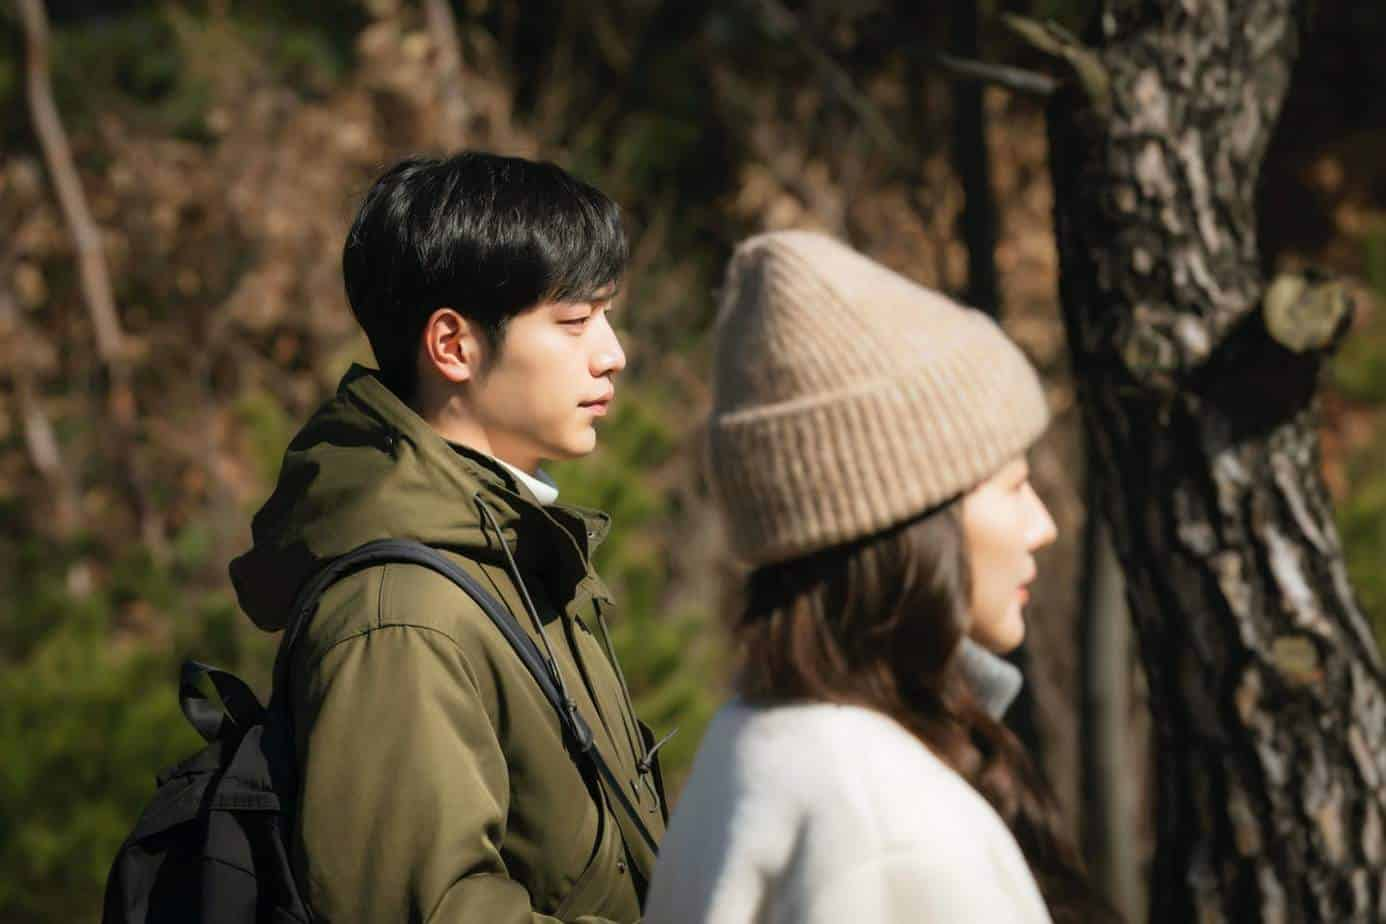 When The Weather Is Fine romance drama